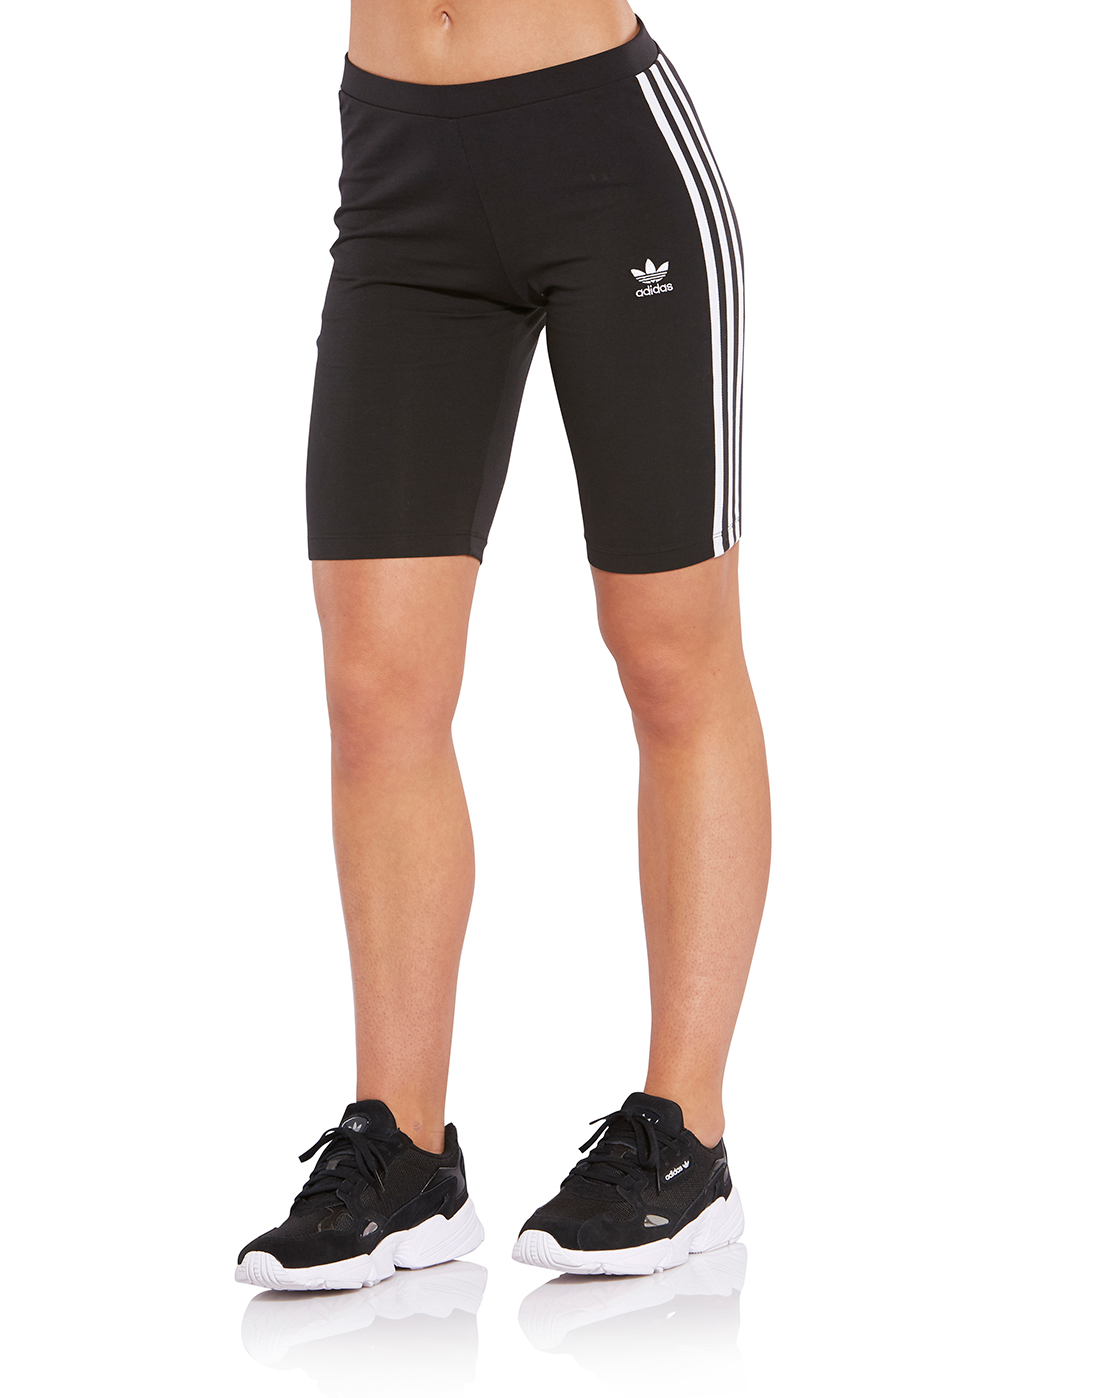 Women's Life Style Adidas Cycling Originals Shorts Sports Black AwrqZgA